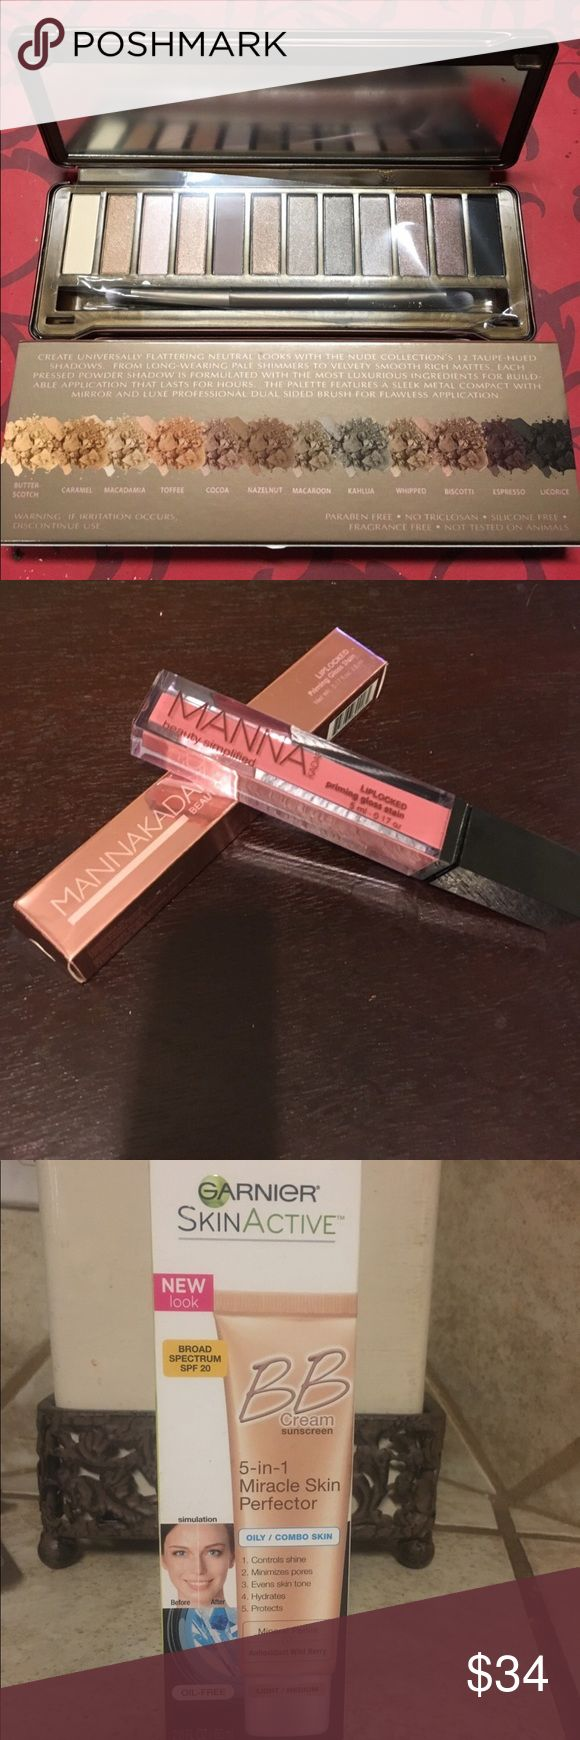 FREE 💄 LIPGLOSS!! Makeup bundle! Neutral colors!! Makeup bundle includes Garnier BB CREAM for oily/combo skin in light to medium 2 oz full size, Manna Kadar gloss in neutral lucky, Pure cosmetics shadow set in Nude palette. All NIB, unused. Selling separately but if you purchase this bundle, you are receiving the LIP GLOSS for free! Makeup